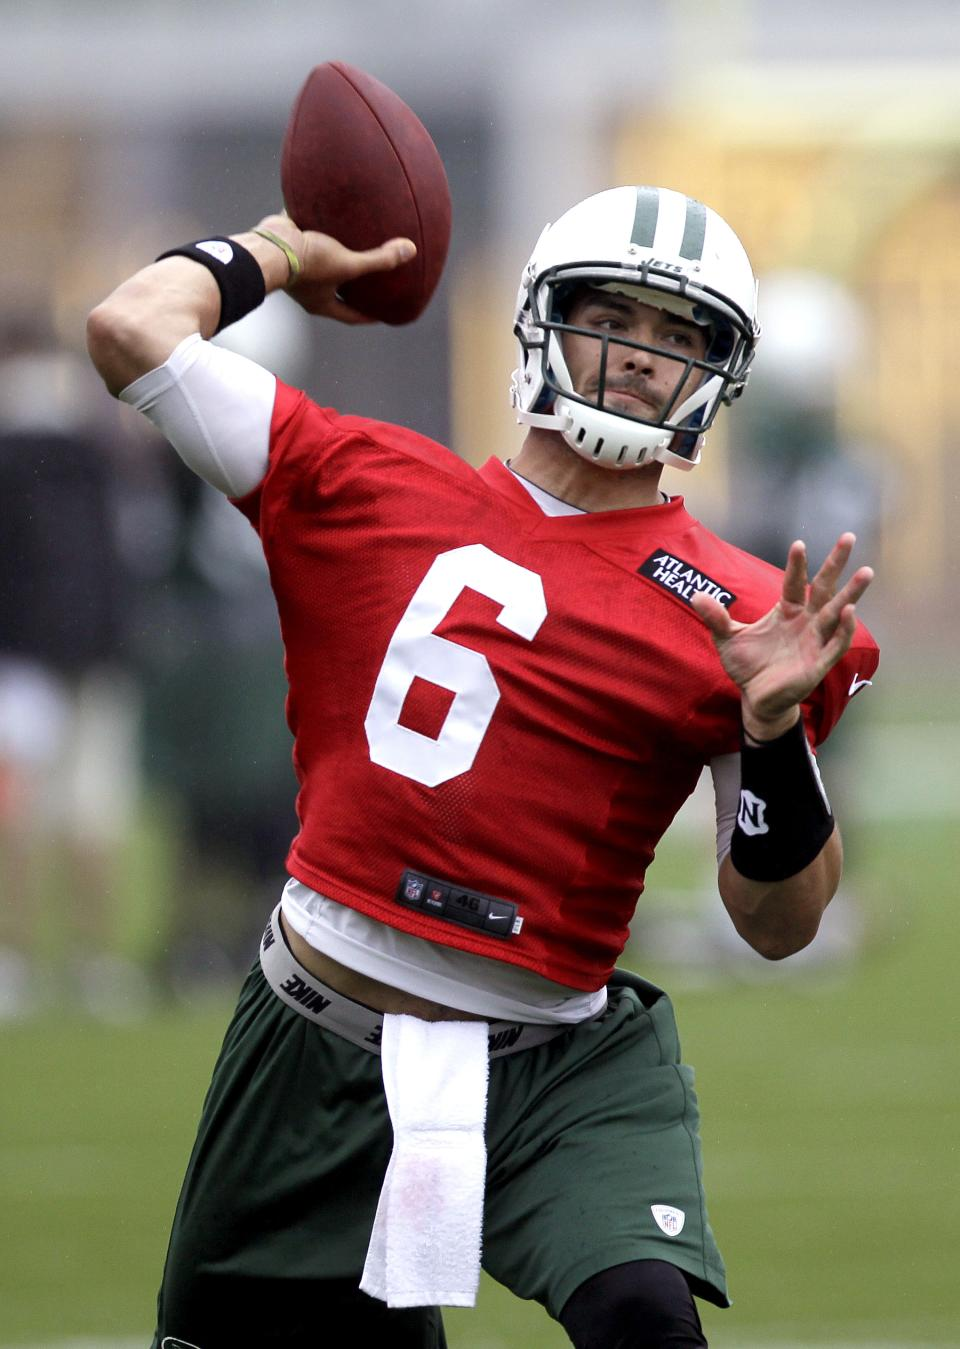 New York Jets quarterback Mark Sanchez throws during NFL football practice, Thursday, May 24, 2012, in Florham Park, N.J. (AP Photo/Julio Cortez)